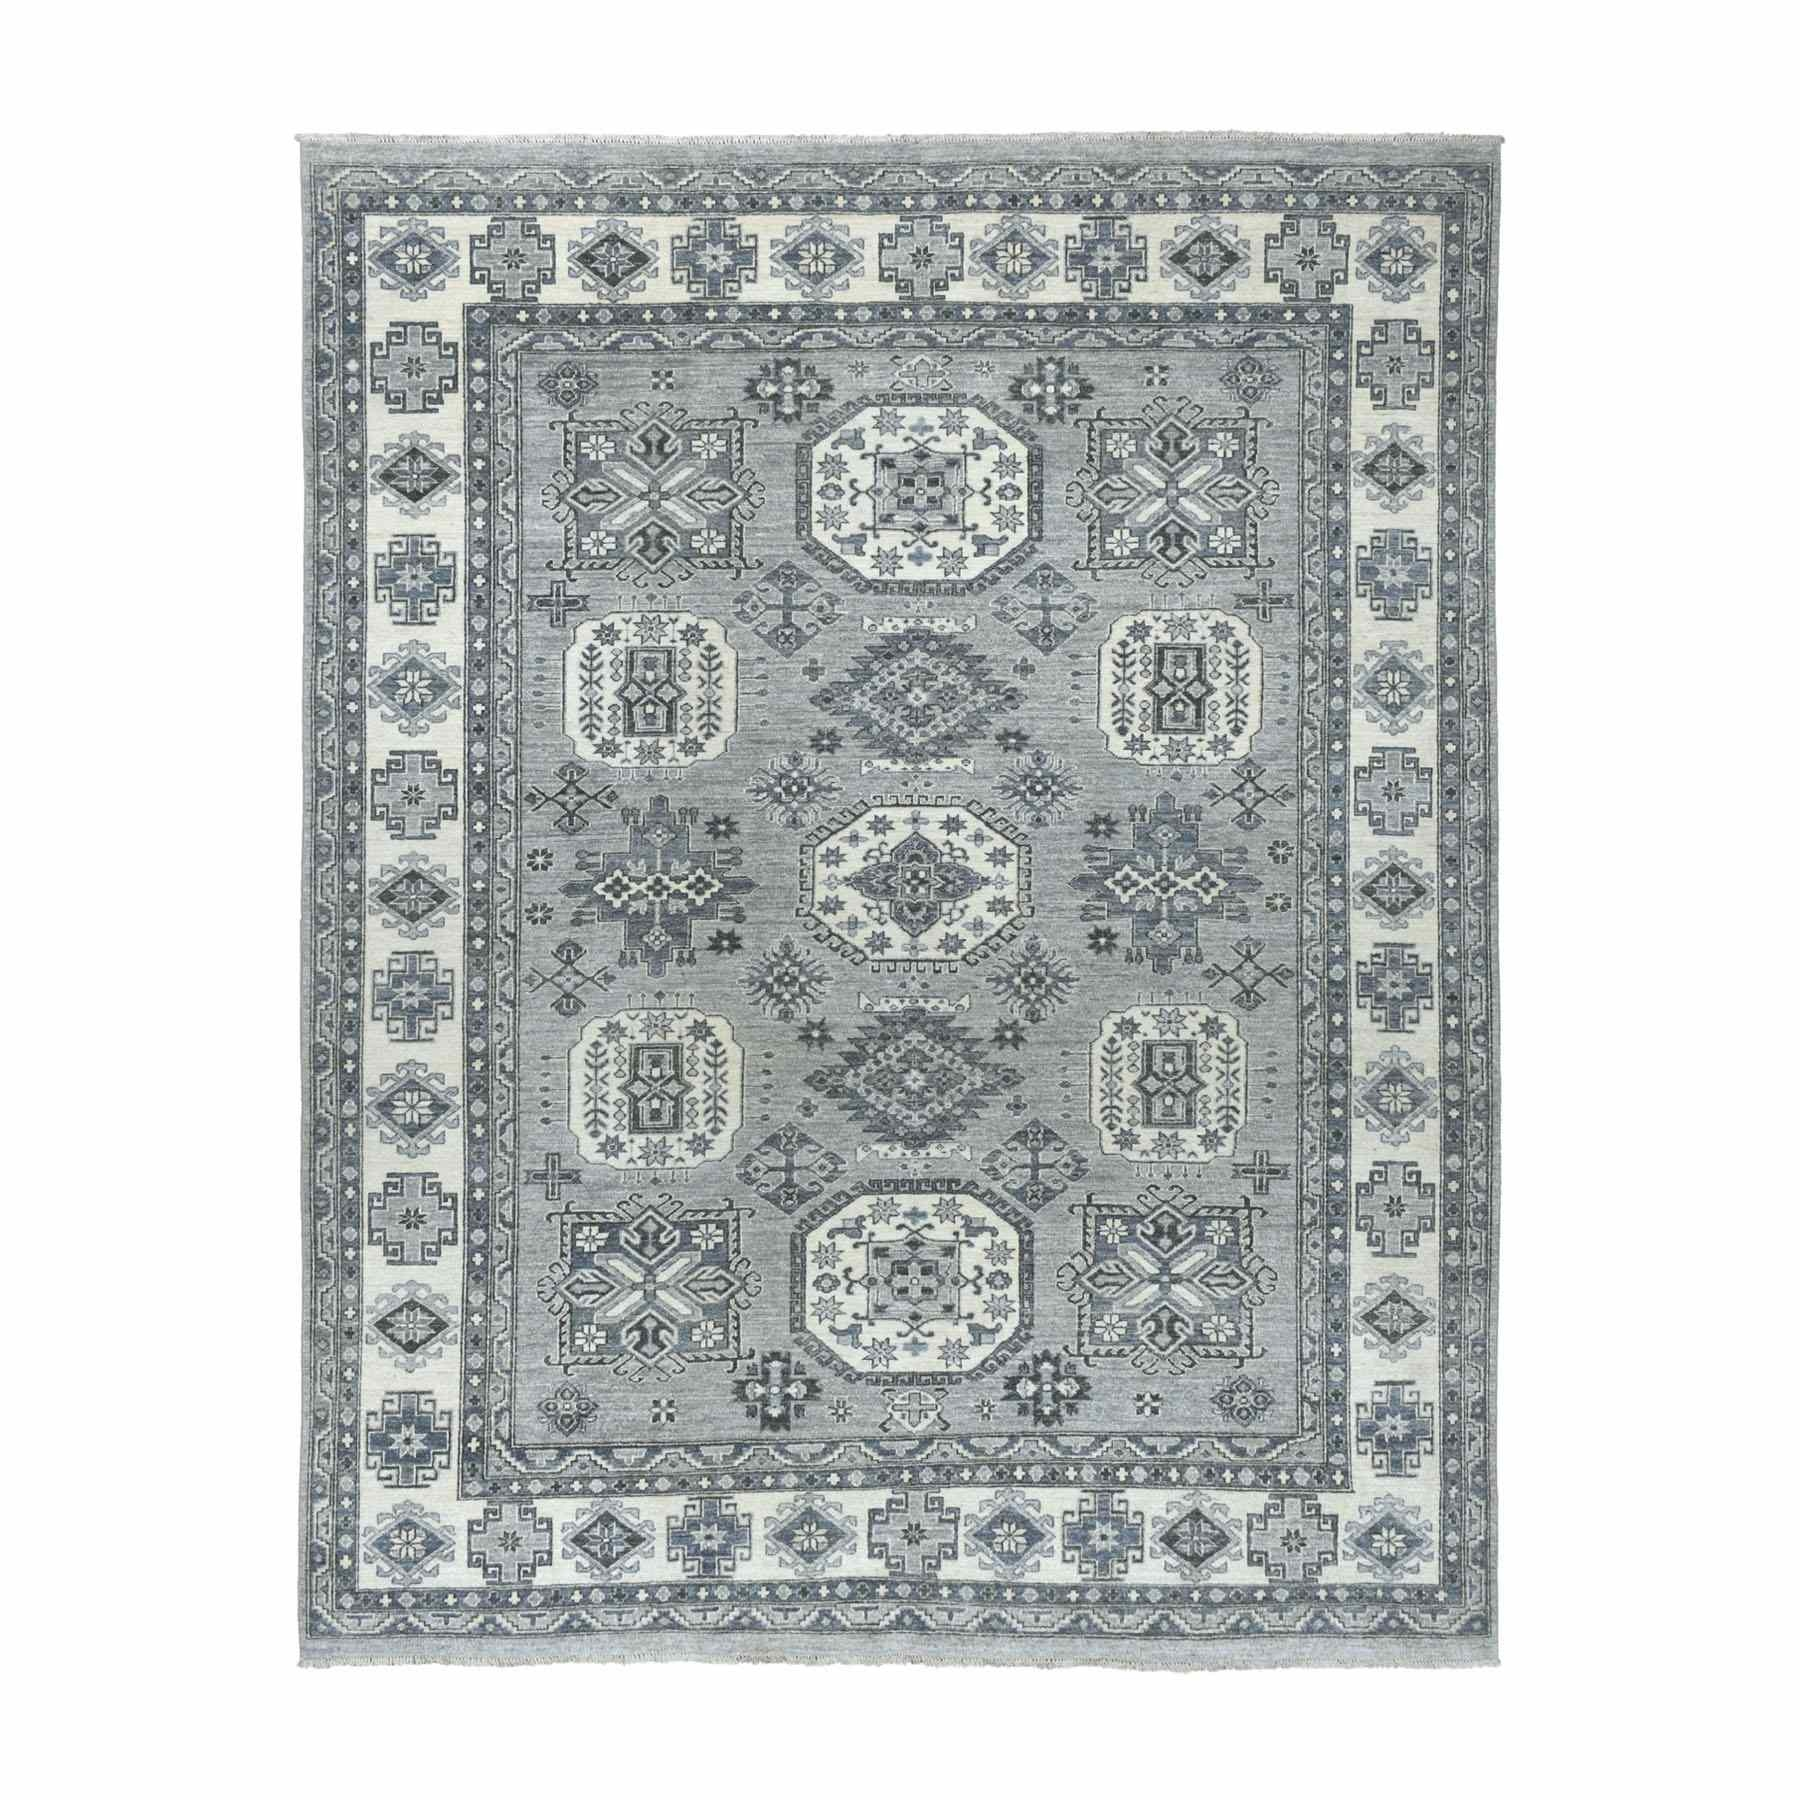 8'X10' Gray Pure Wool Hand-Knotted Peshawar With Karajeh Design Oriental Rug moaeabb0